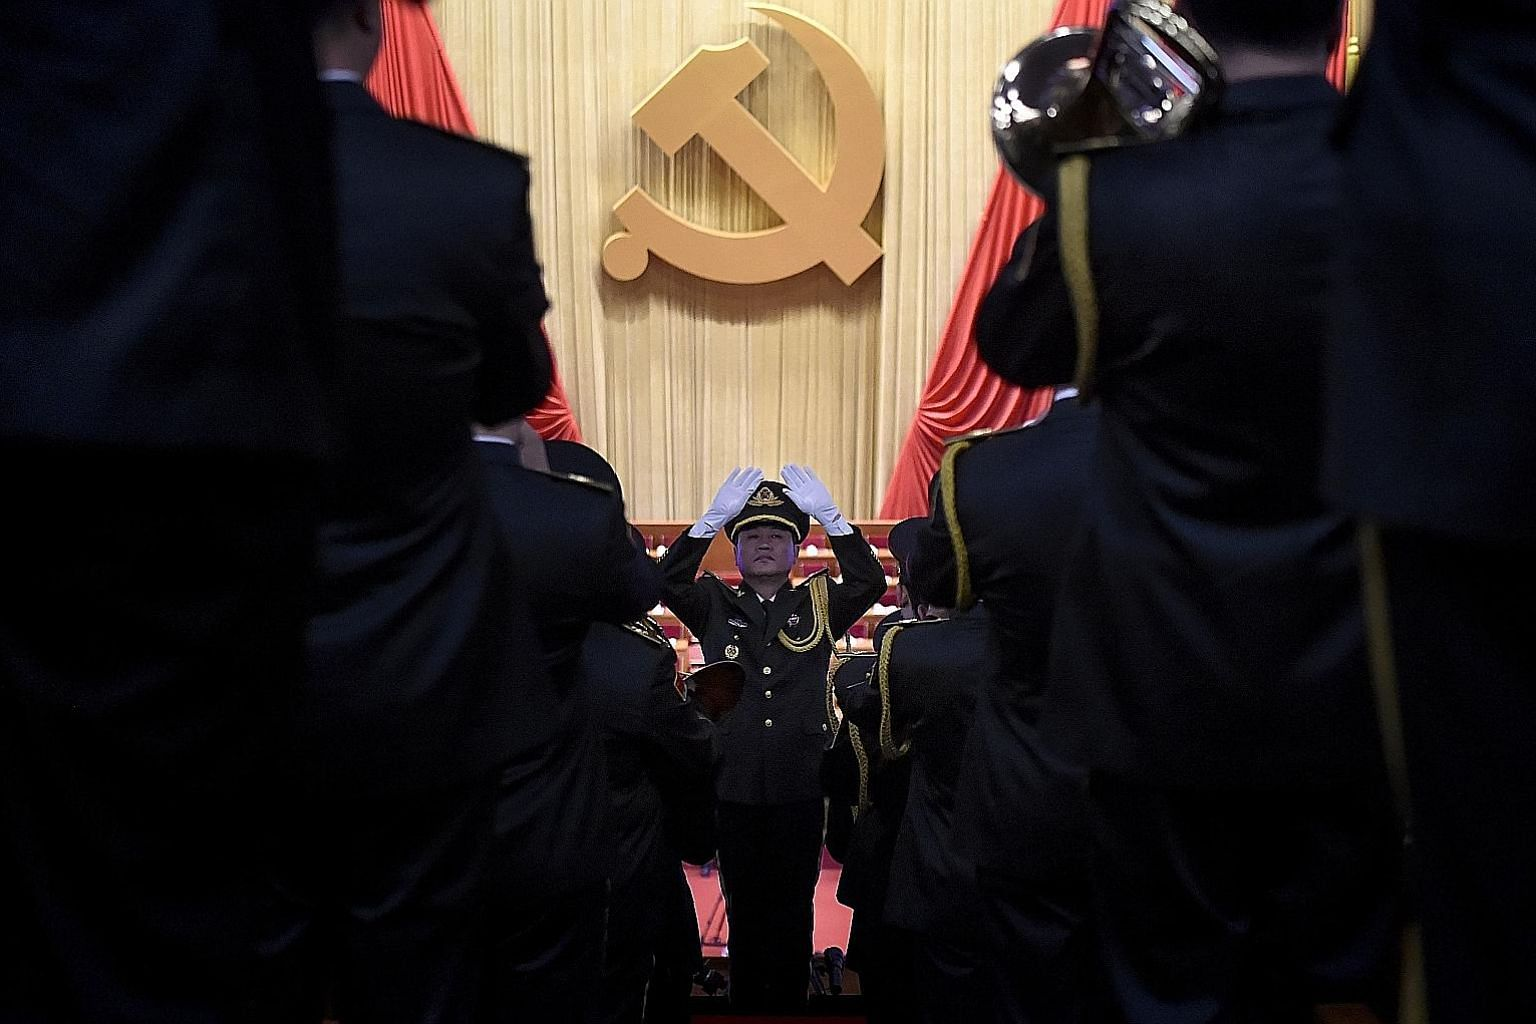 A military band practising before the opening session of the Chinese Communist Party's 19th National Congress at the Great Hall of the People in Beijing. While observers say China's aspirations are understandable, there are those who worry about what